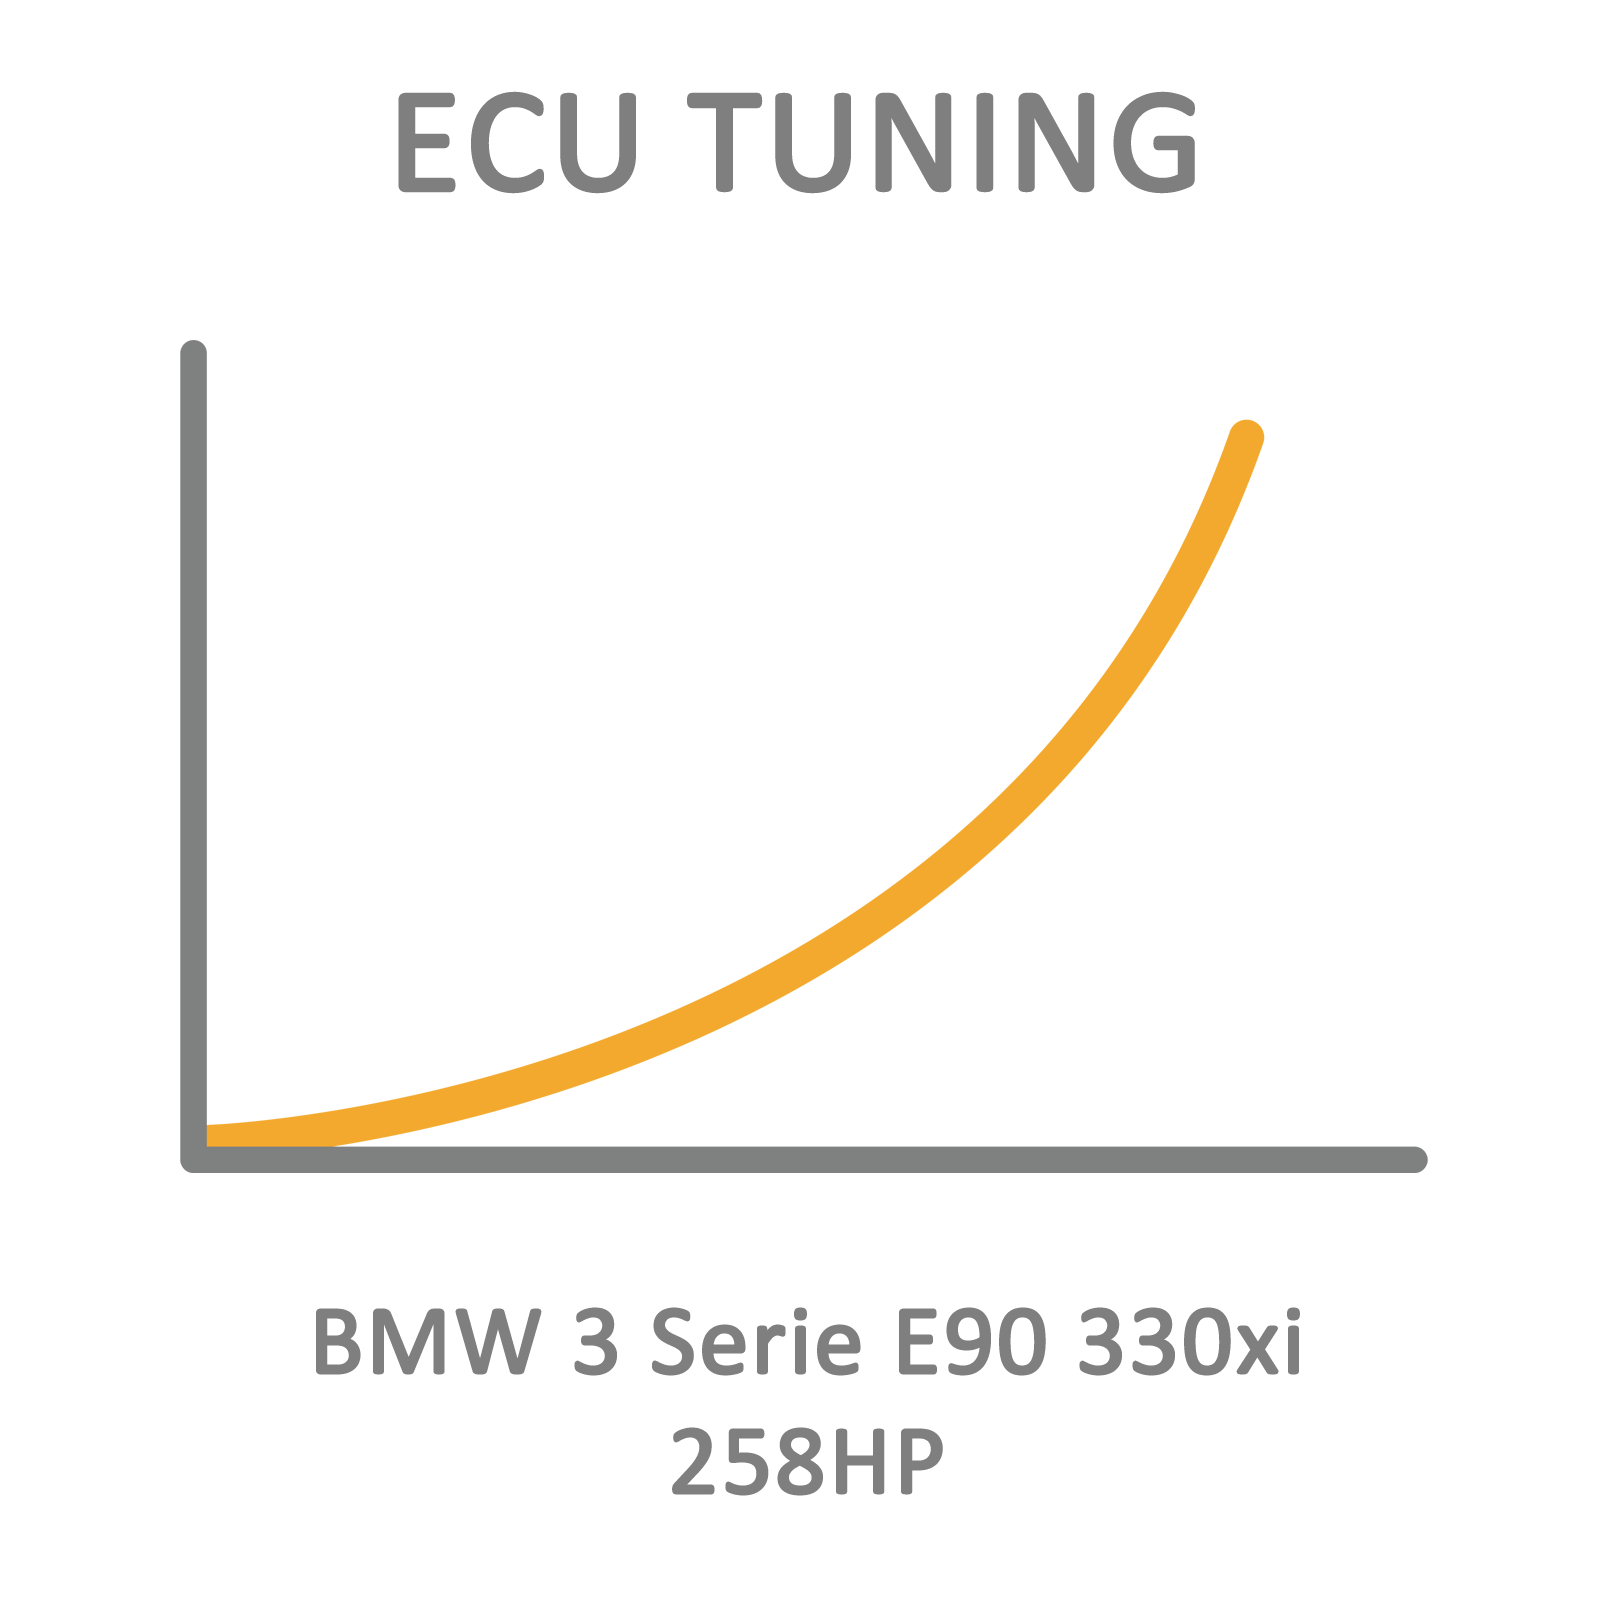 BMW 3 Series E90 330xi 258HP ECU Tuning Remapping Programming